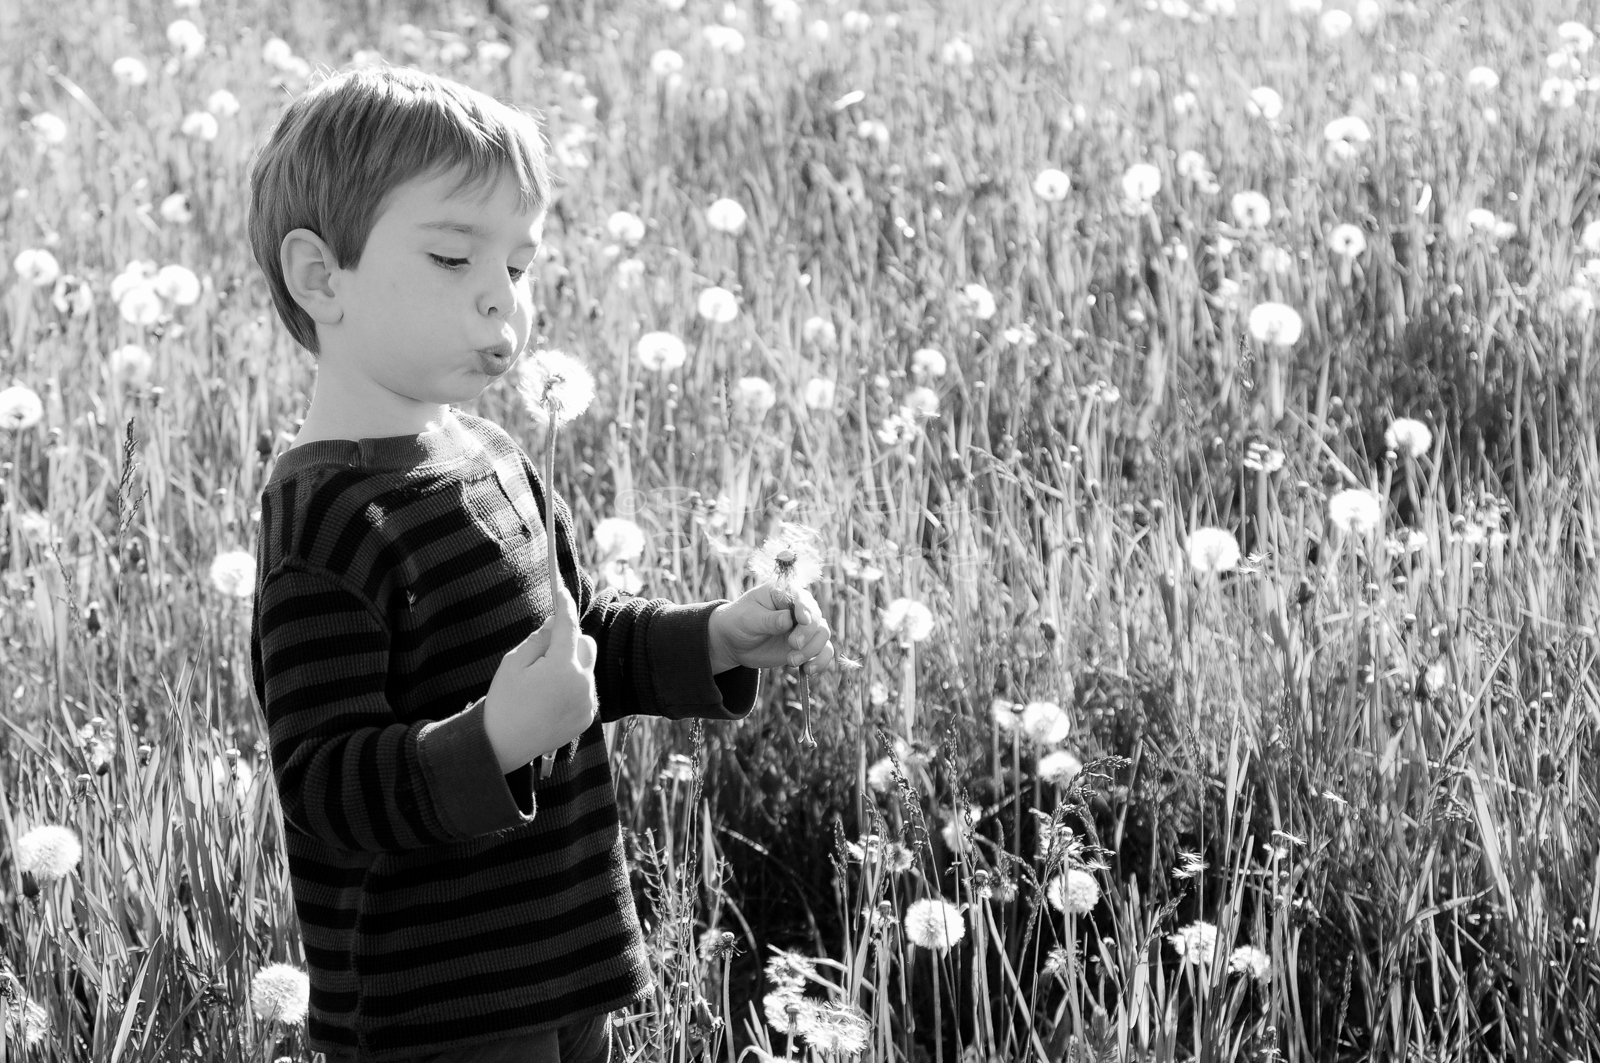 Kids Blowing Dandelion fuzz